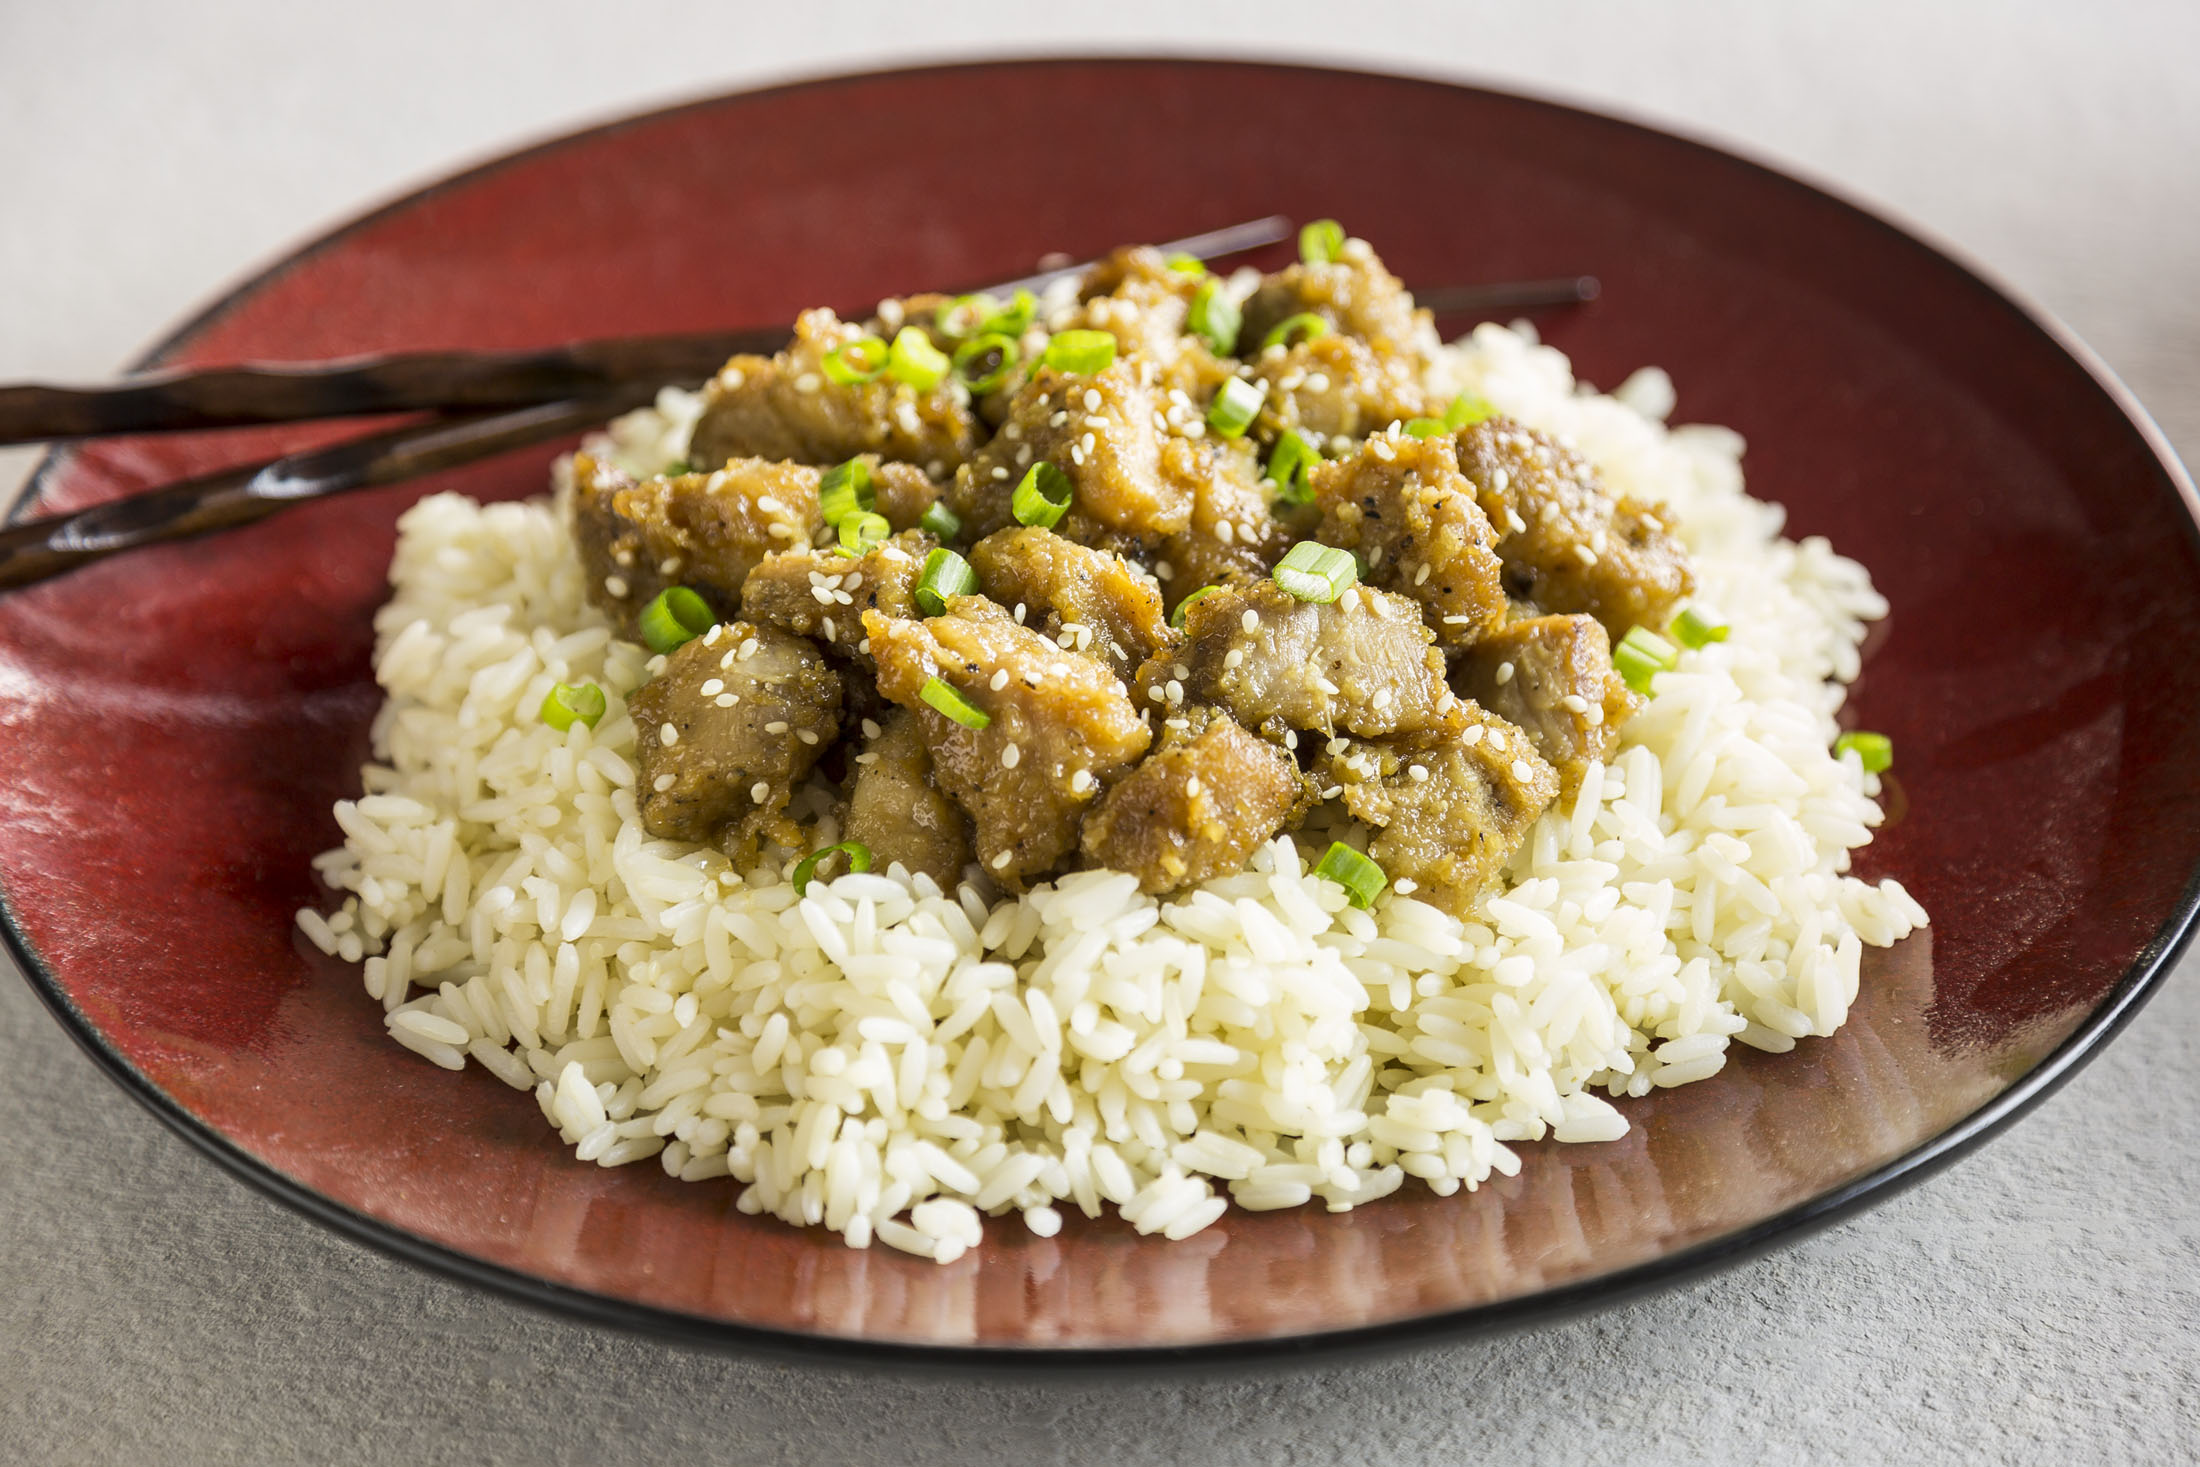 Slow Cooker Asian Ginger Garlic Chicken by Sam Henderson of Today's Nest